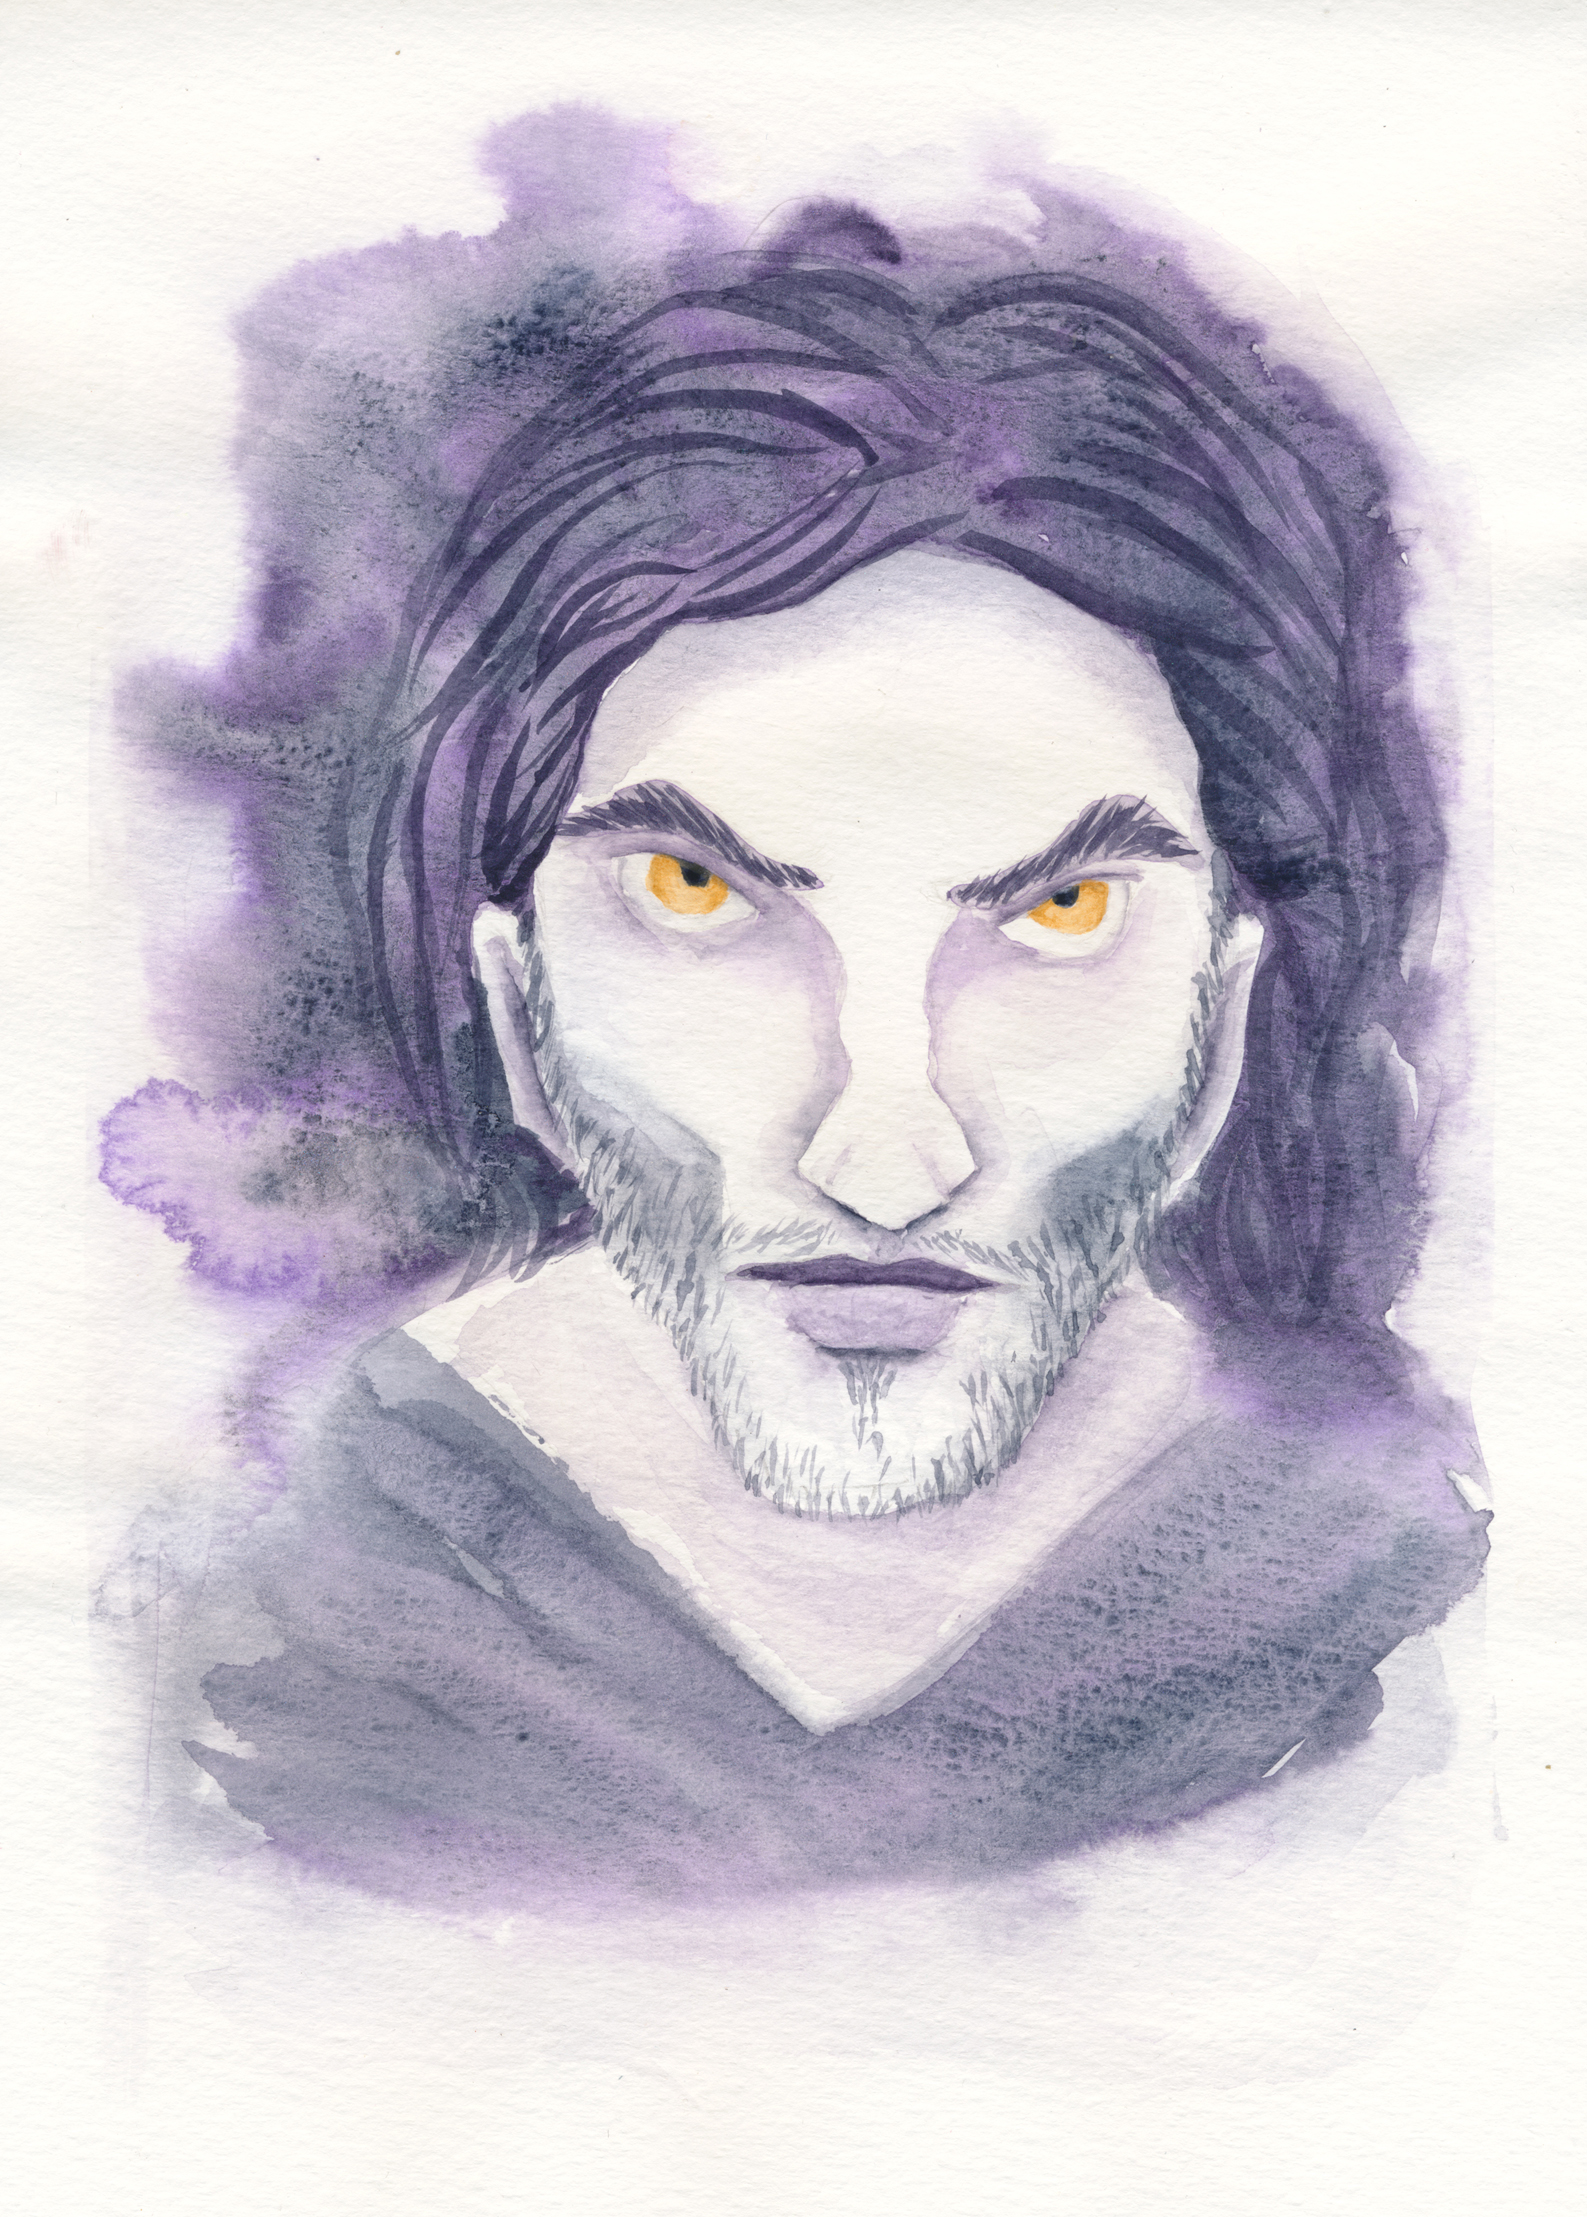 A watercolor portrait of Strahd von Zarovich in purples and blues. His eyes stand out in a golden yellow.